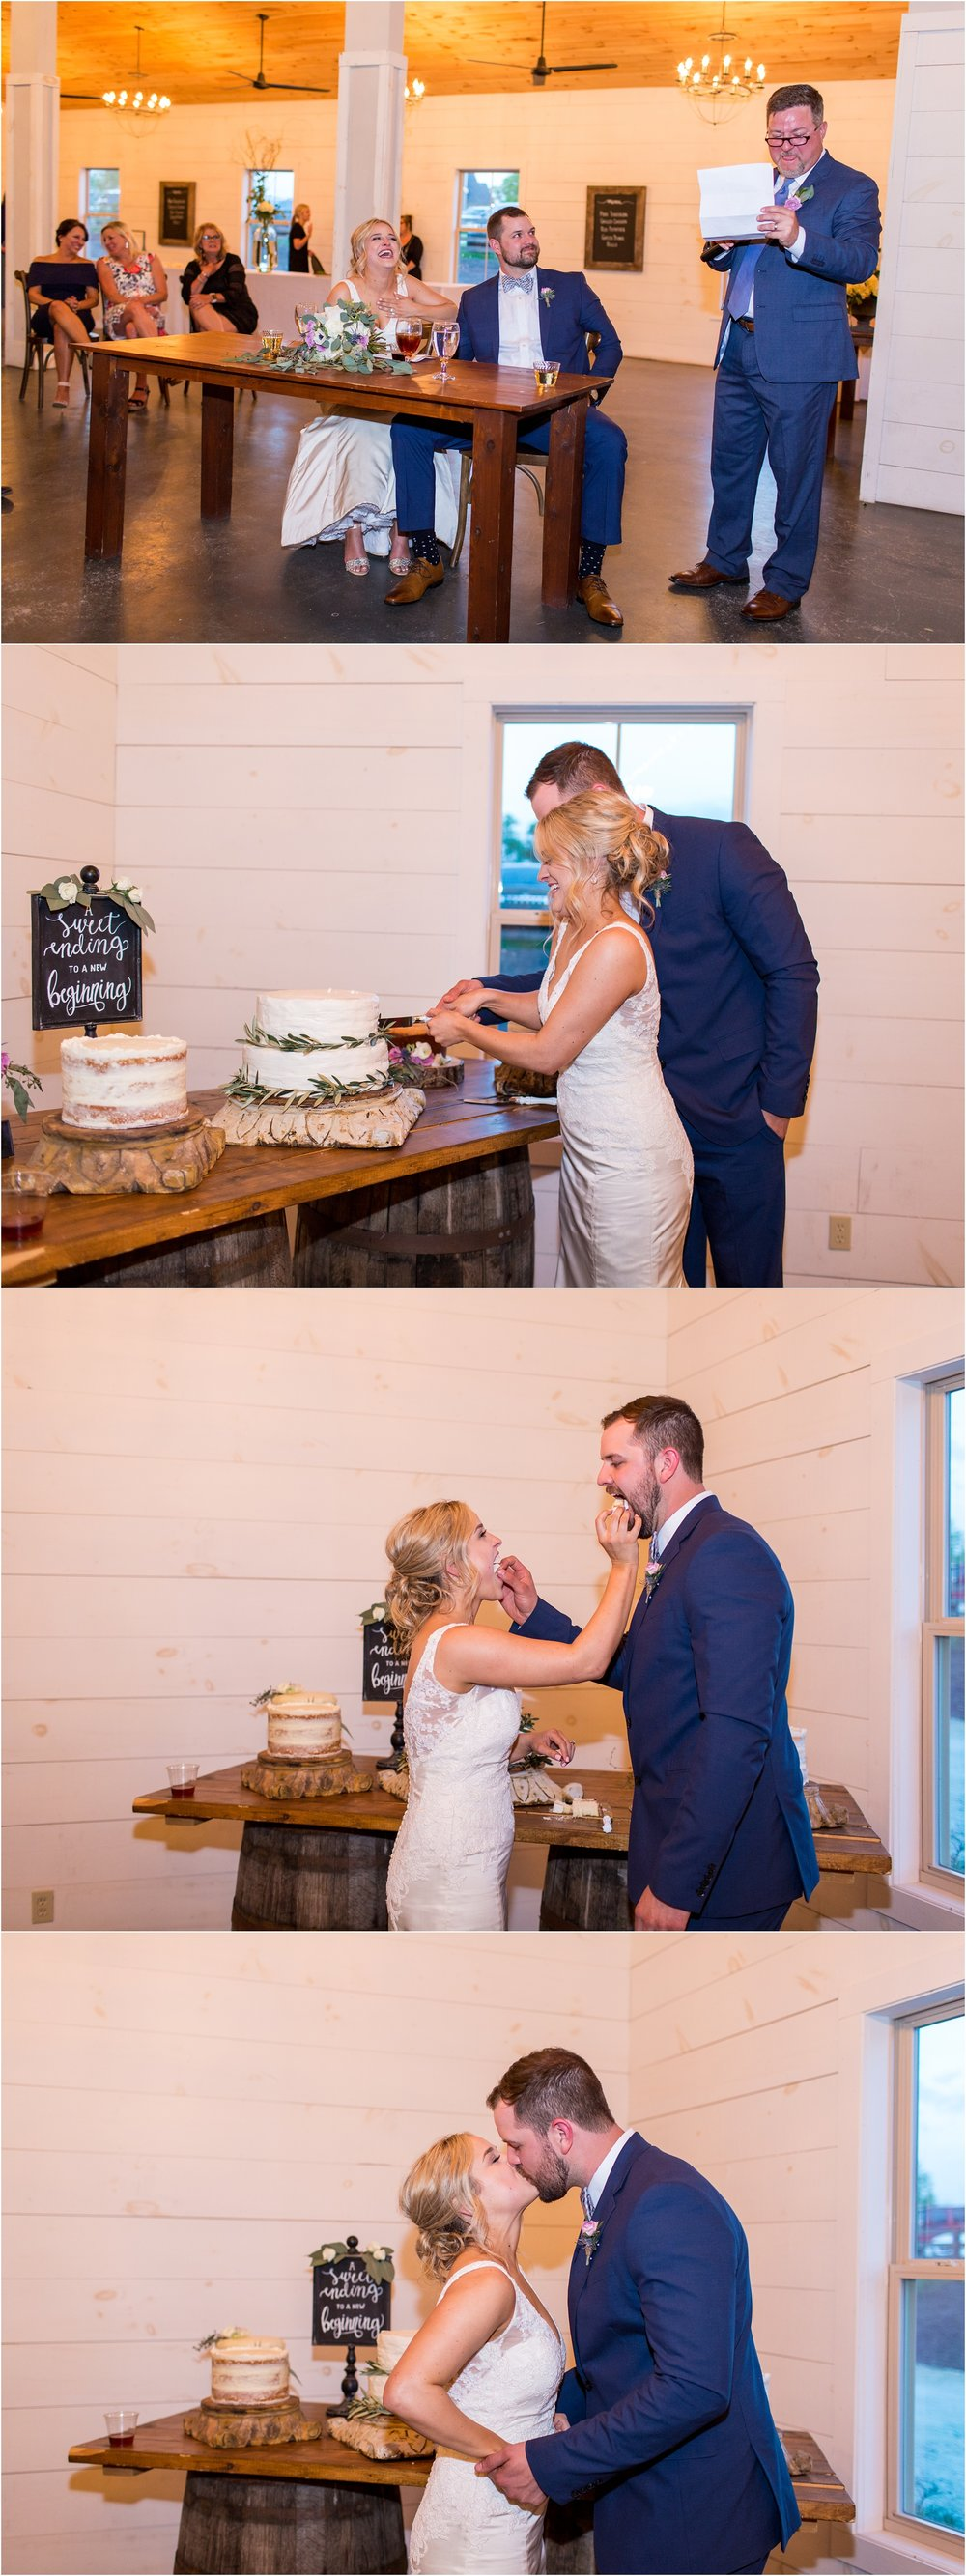 Bleckley Wedding- Sneak Peek-140.jpg